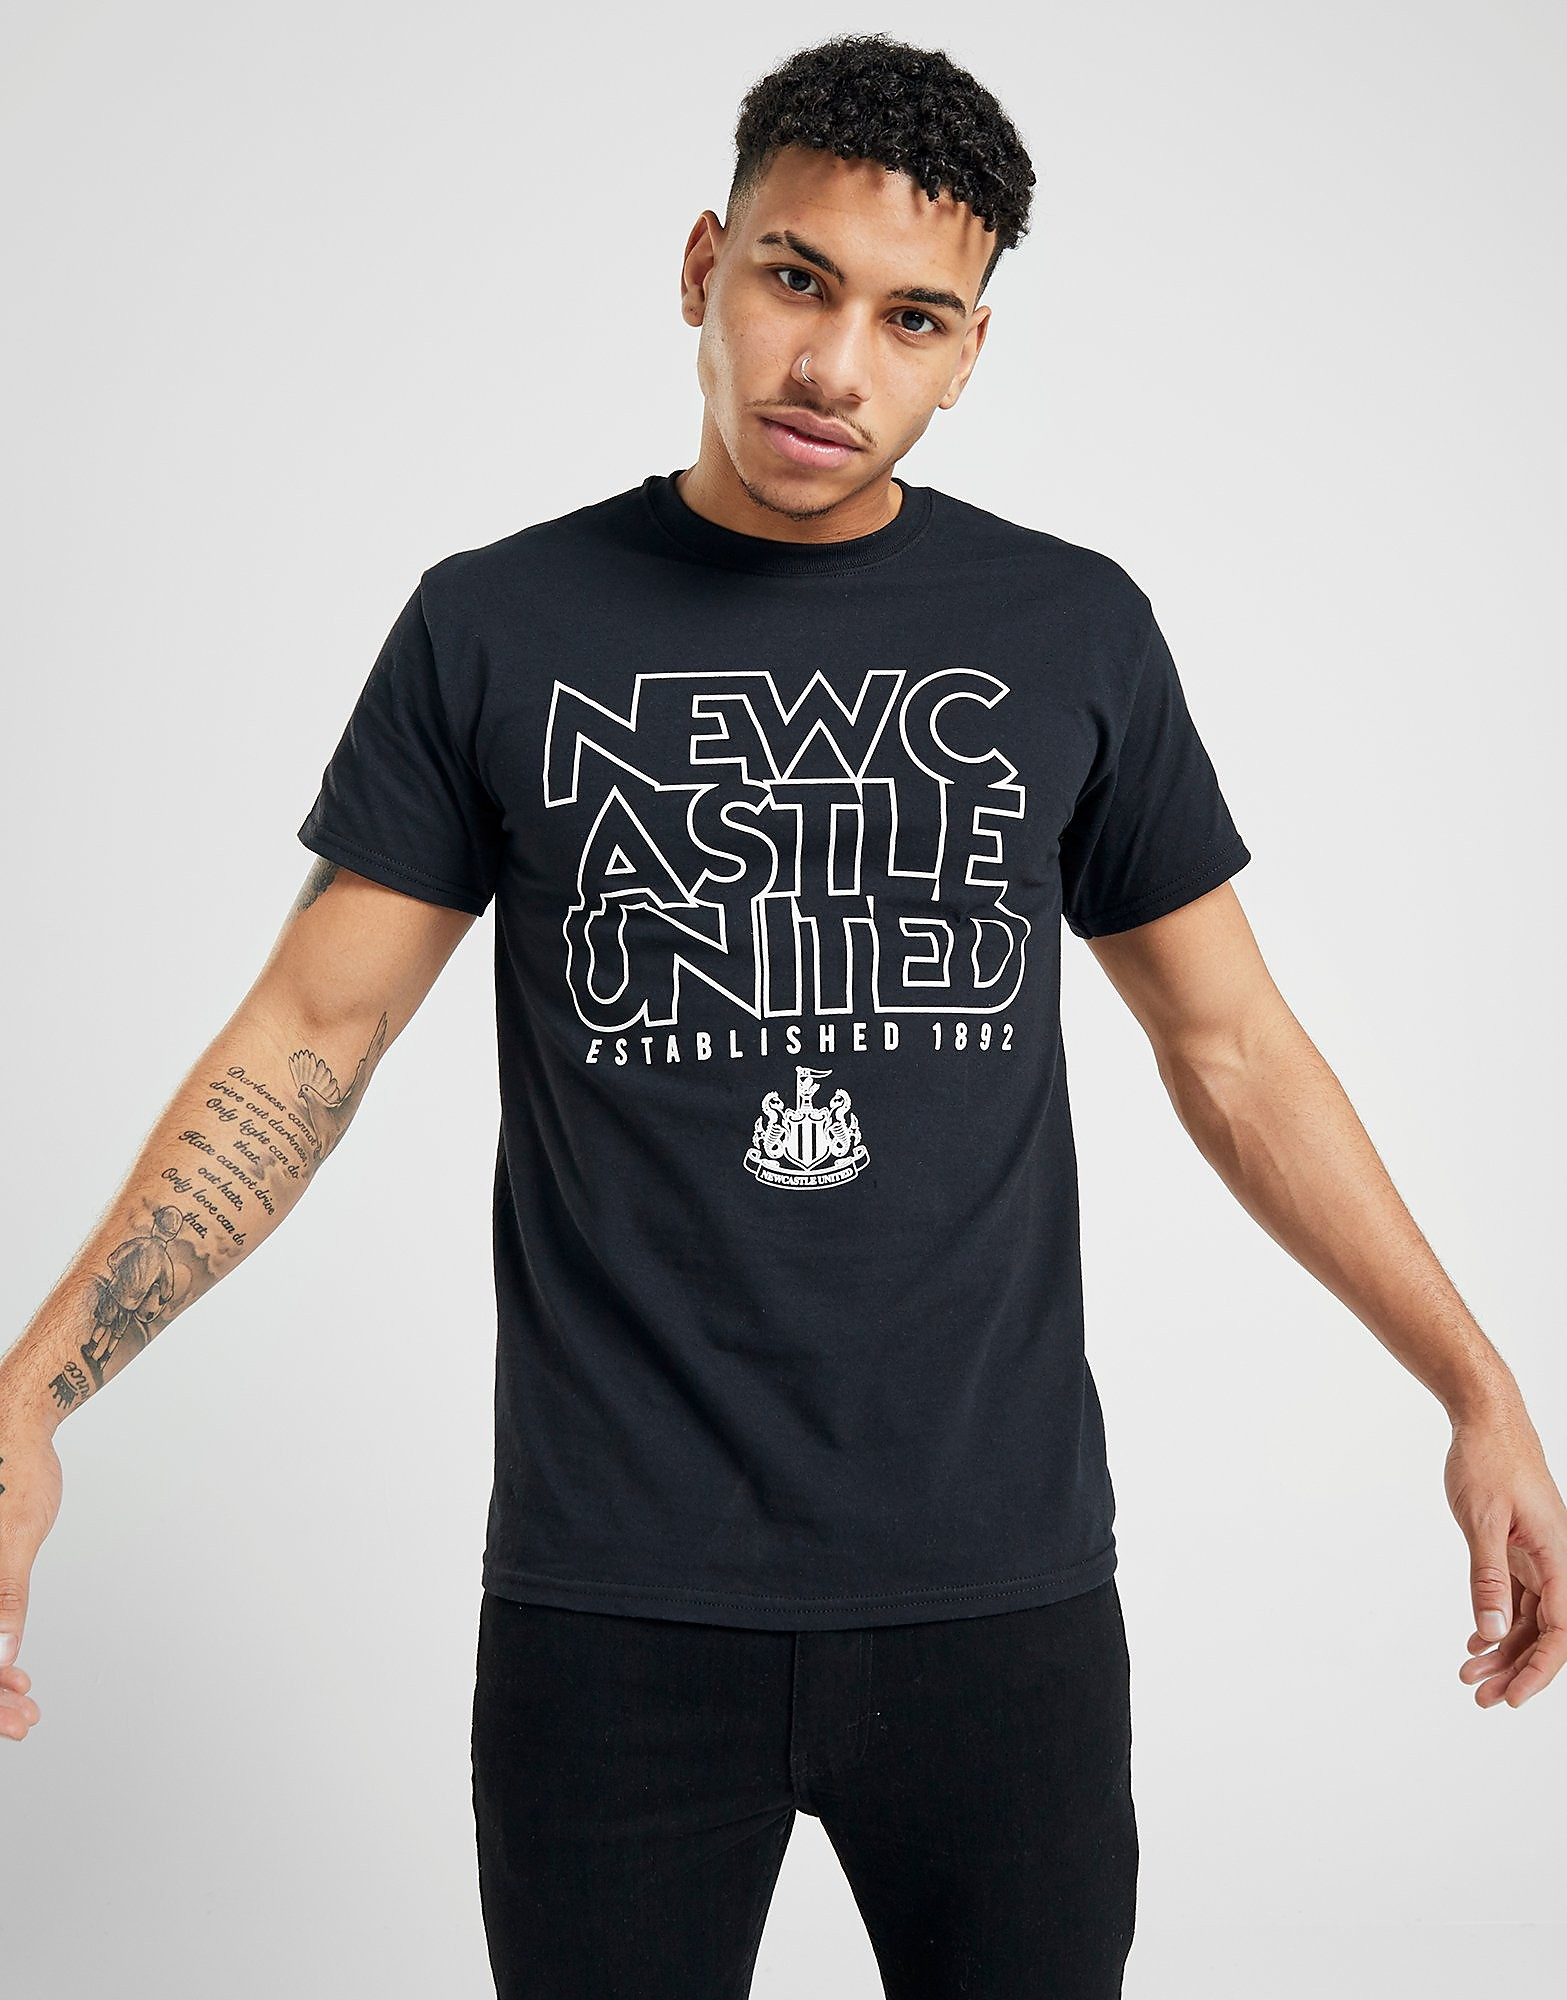 Official Team Newcastle United EST 1892 T-Shirt